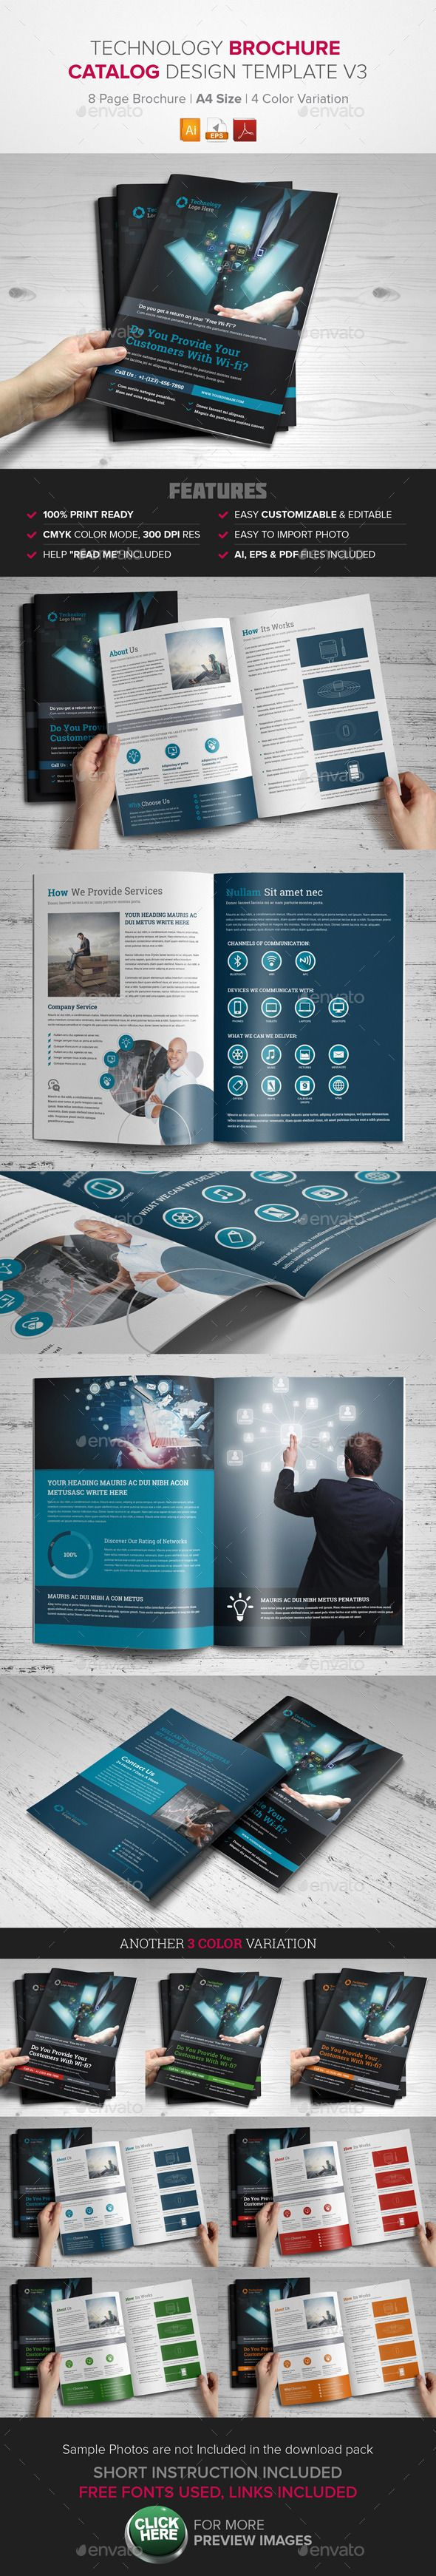 Technology Brochure Catalog Template V3